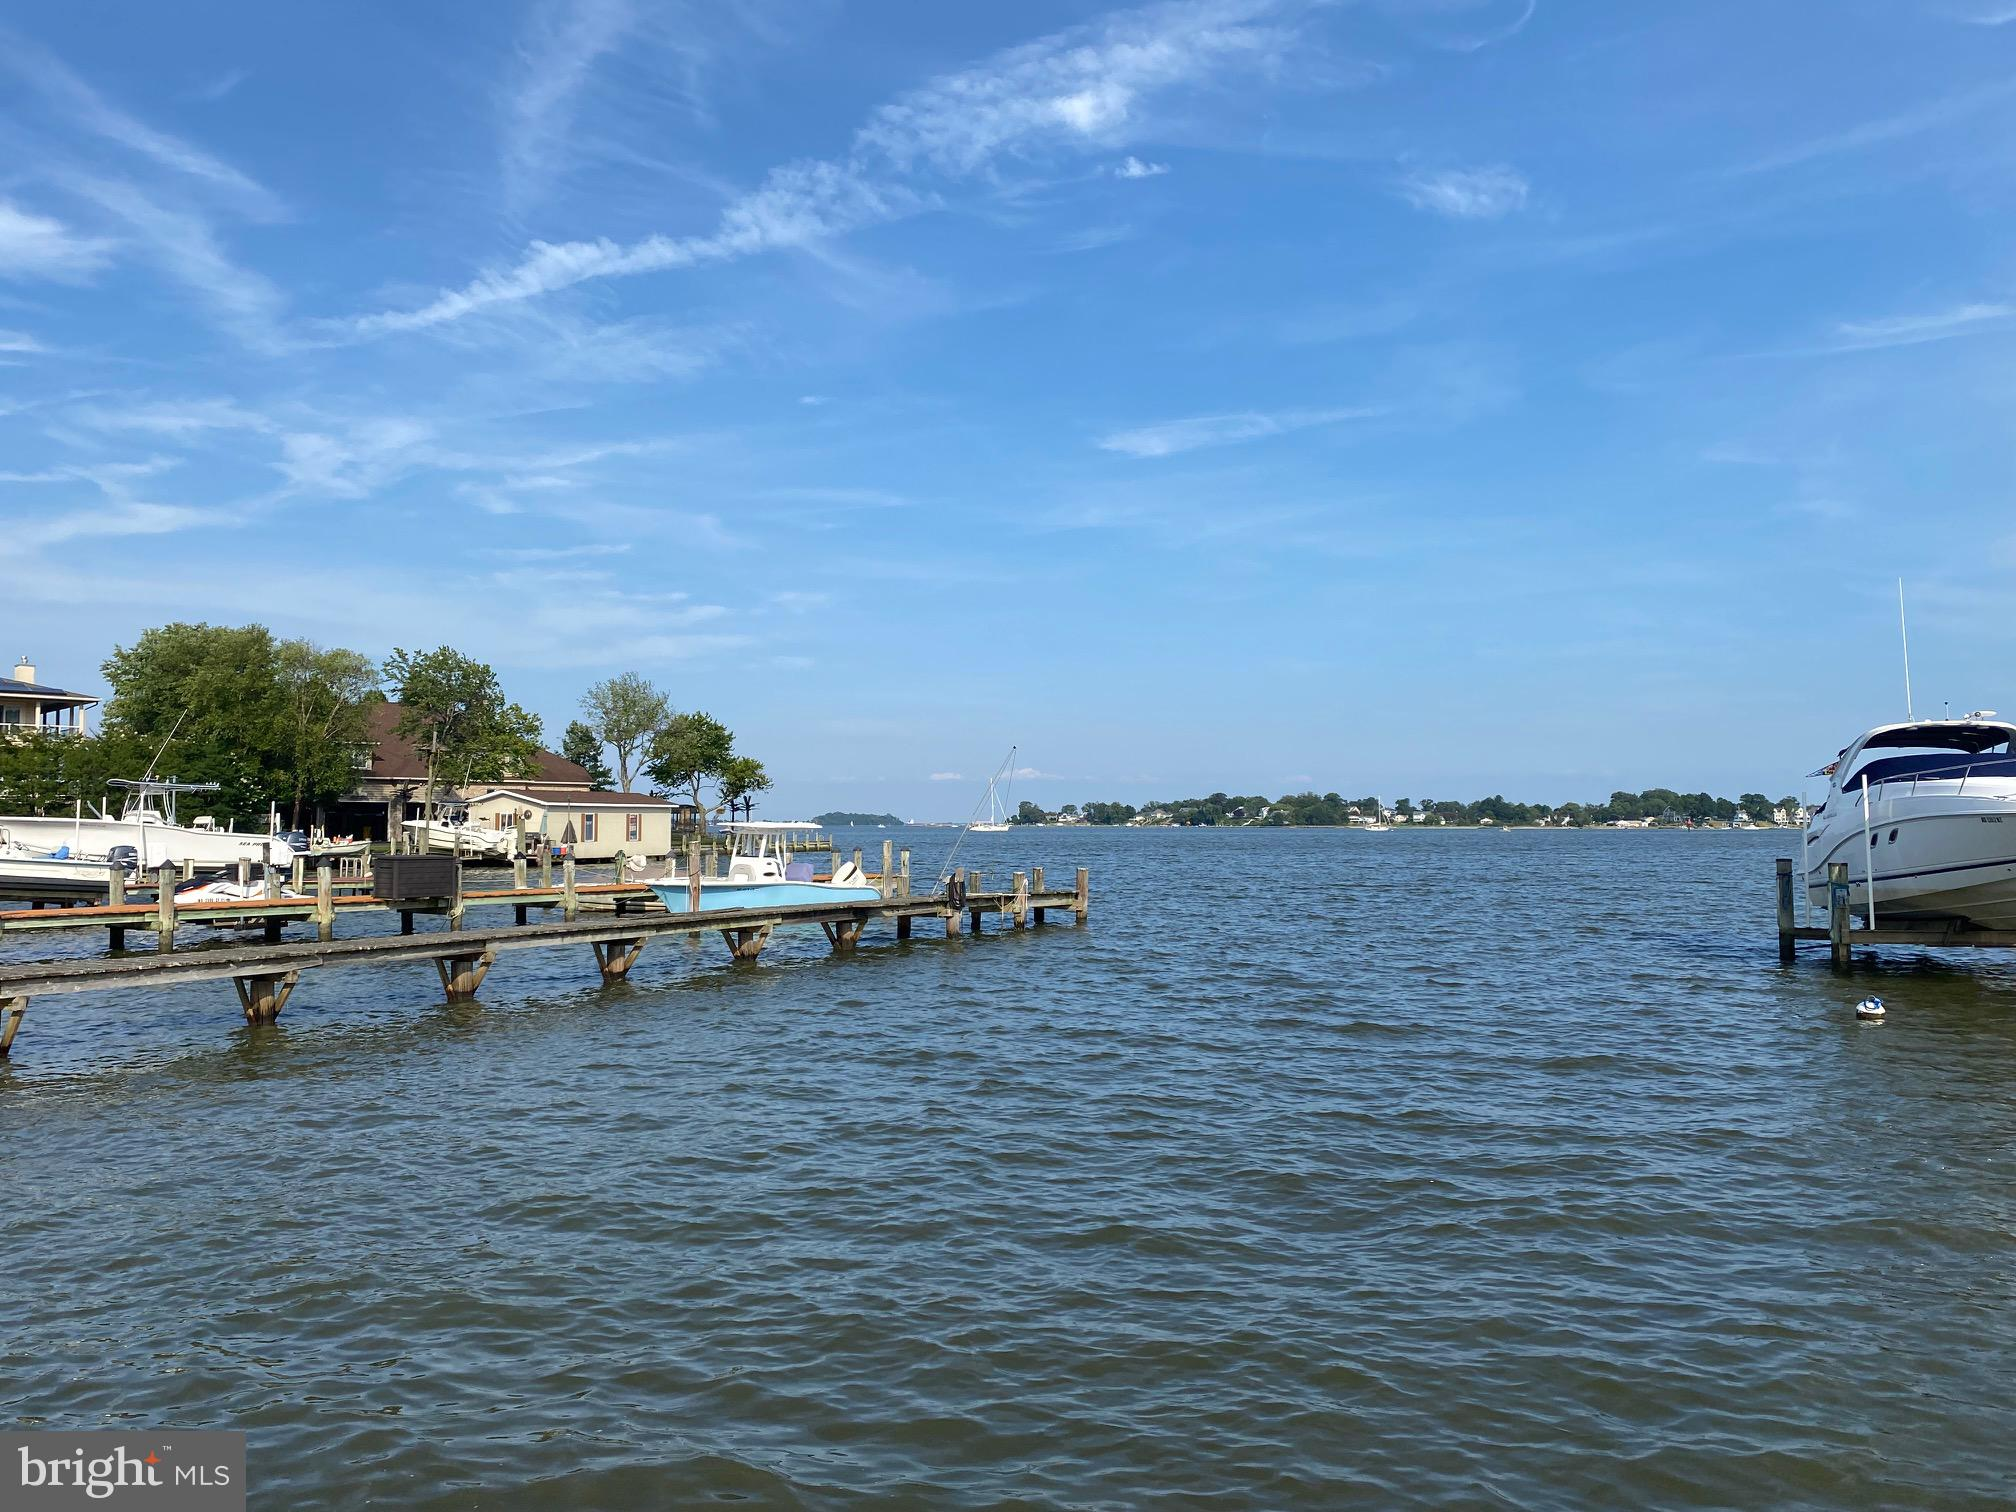 Phenomenal Opportunity to build your dream home on this 20000 square foot Waterfront lot with spectacular views of Selby Bay and South River and even the Bay . Large flat building envelope  w/existing detached garage on this site . Public Sewer,Private Well , 80' of Riprap waterfrontage,cleared lot w/Engineering already underway thats complimented w/Deep Water perfect to build your own private Pier. Dont miss this chance to design your dream